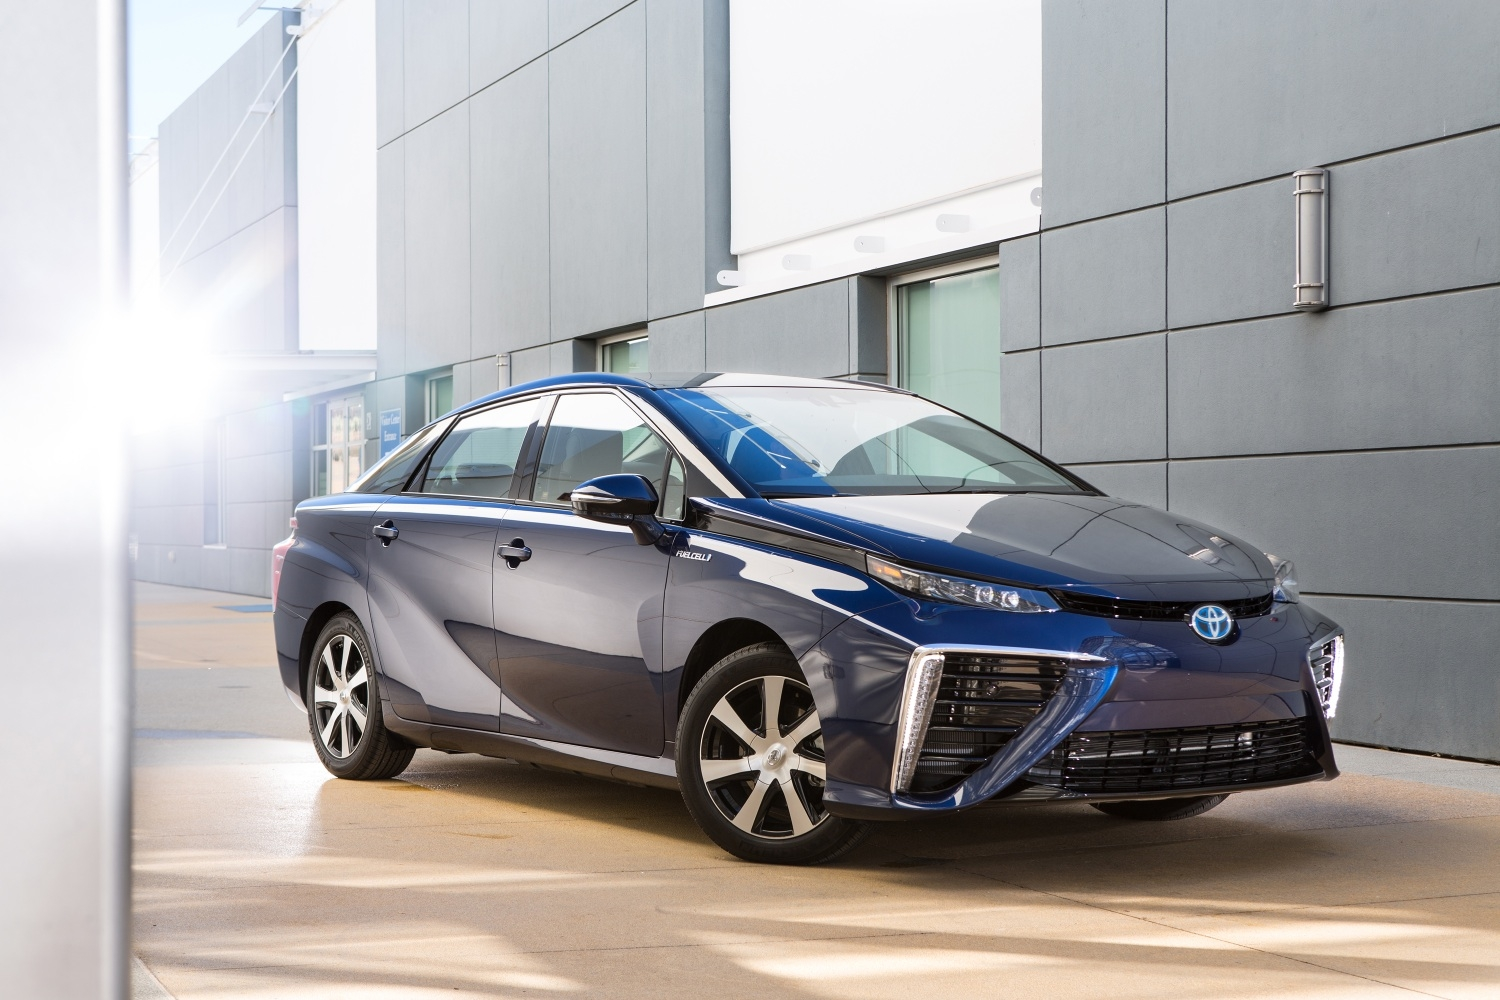 Toyota's Car Of The Future Is Confirmed